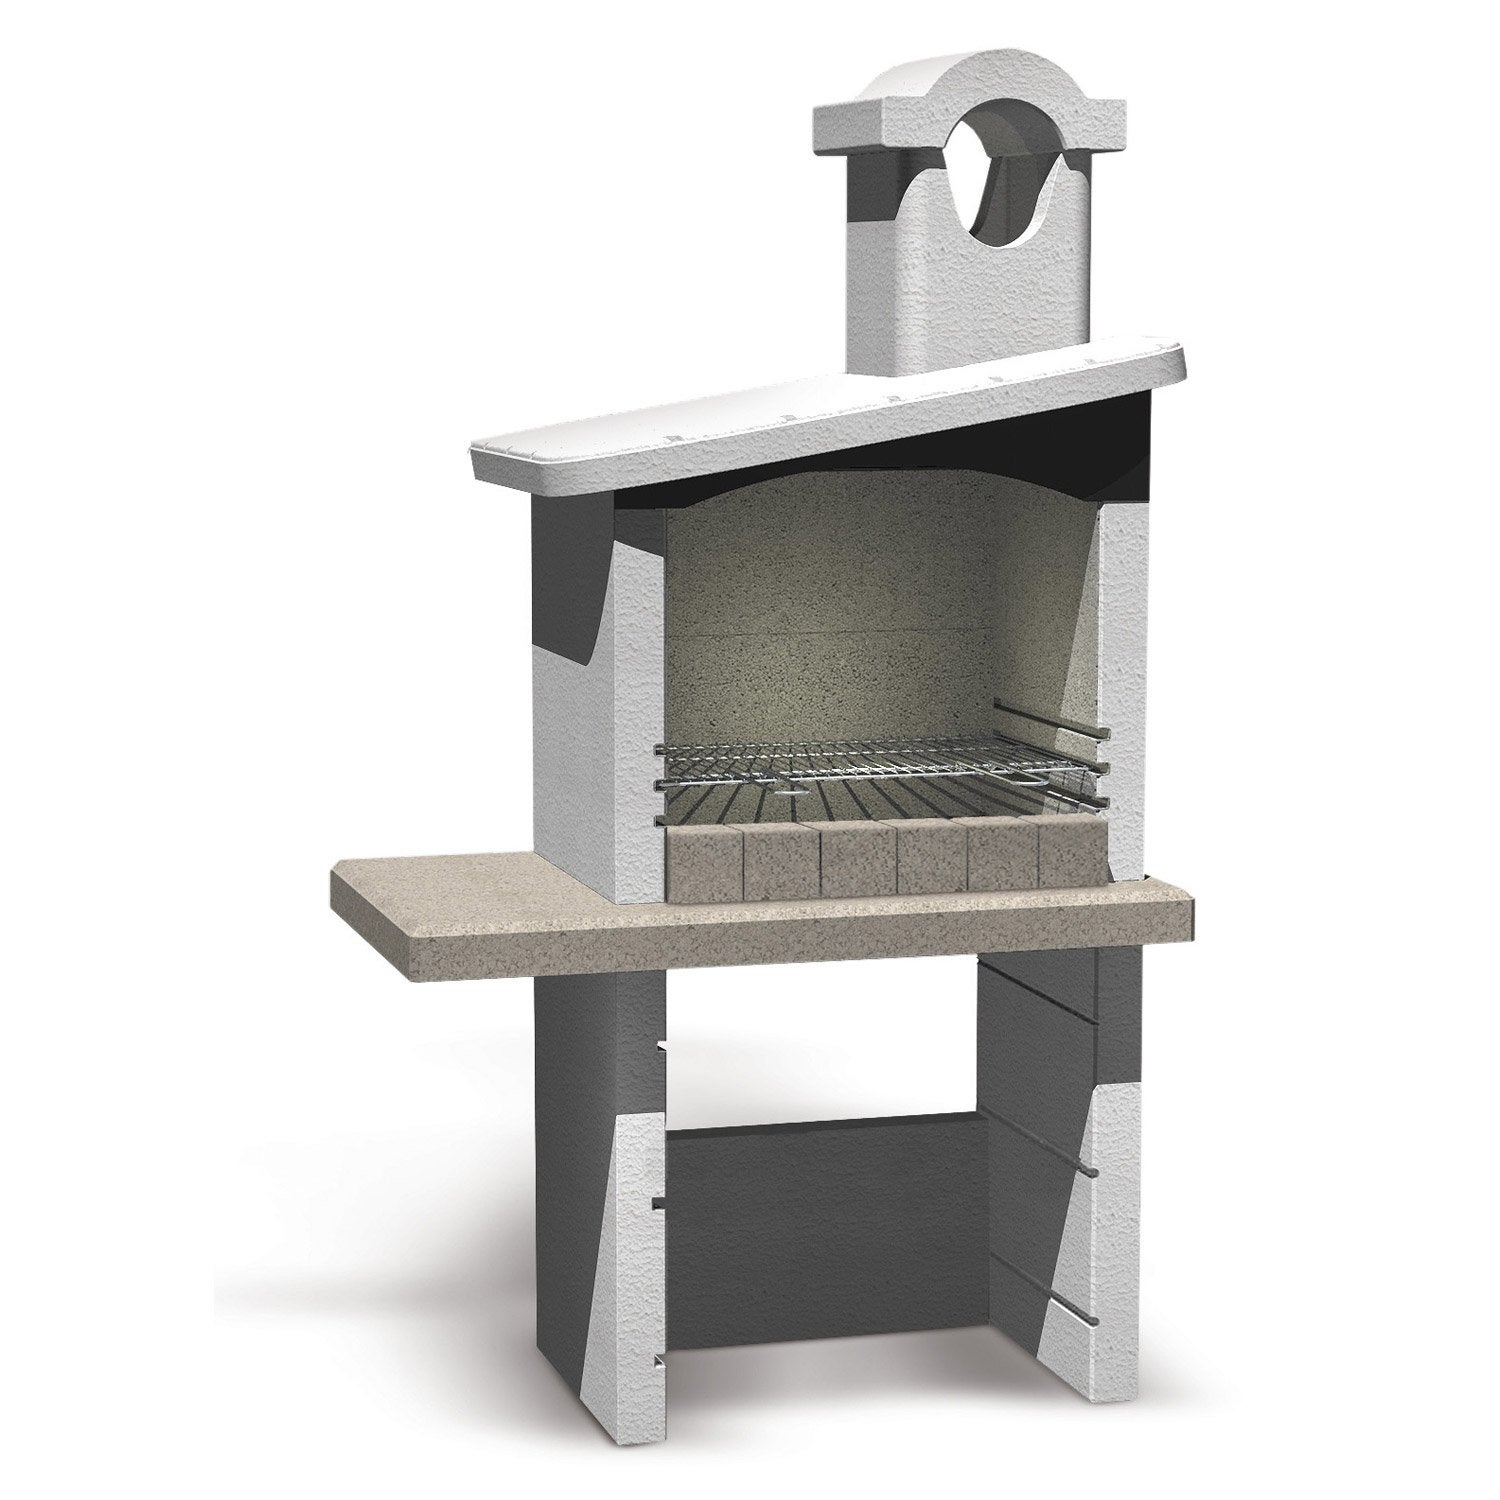 Fabuleux Barbecue fixe, Barbecue béton, Barbecue en pierre | Leroy Merlin NB61